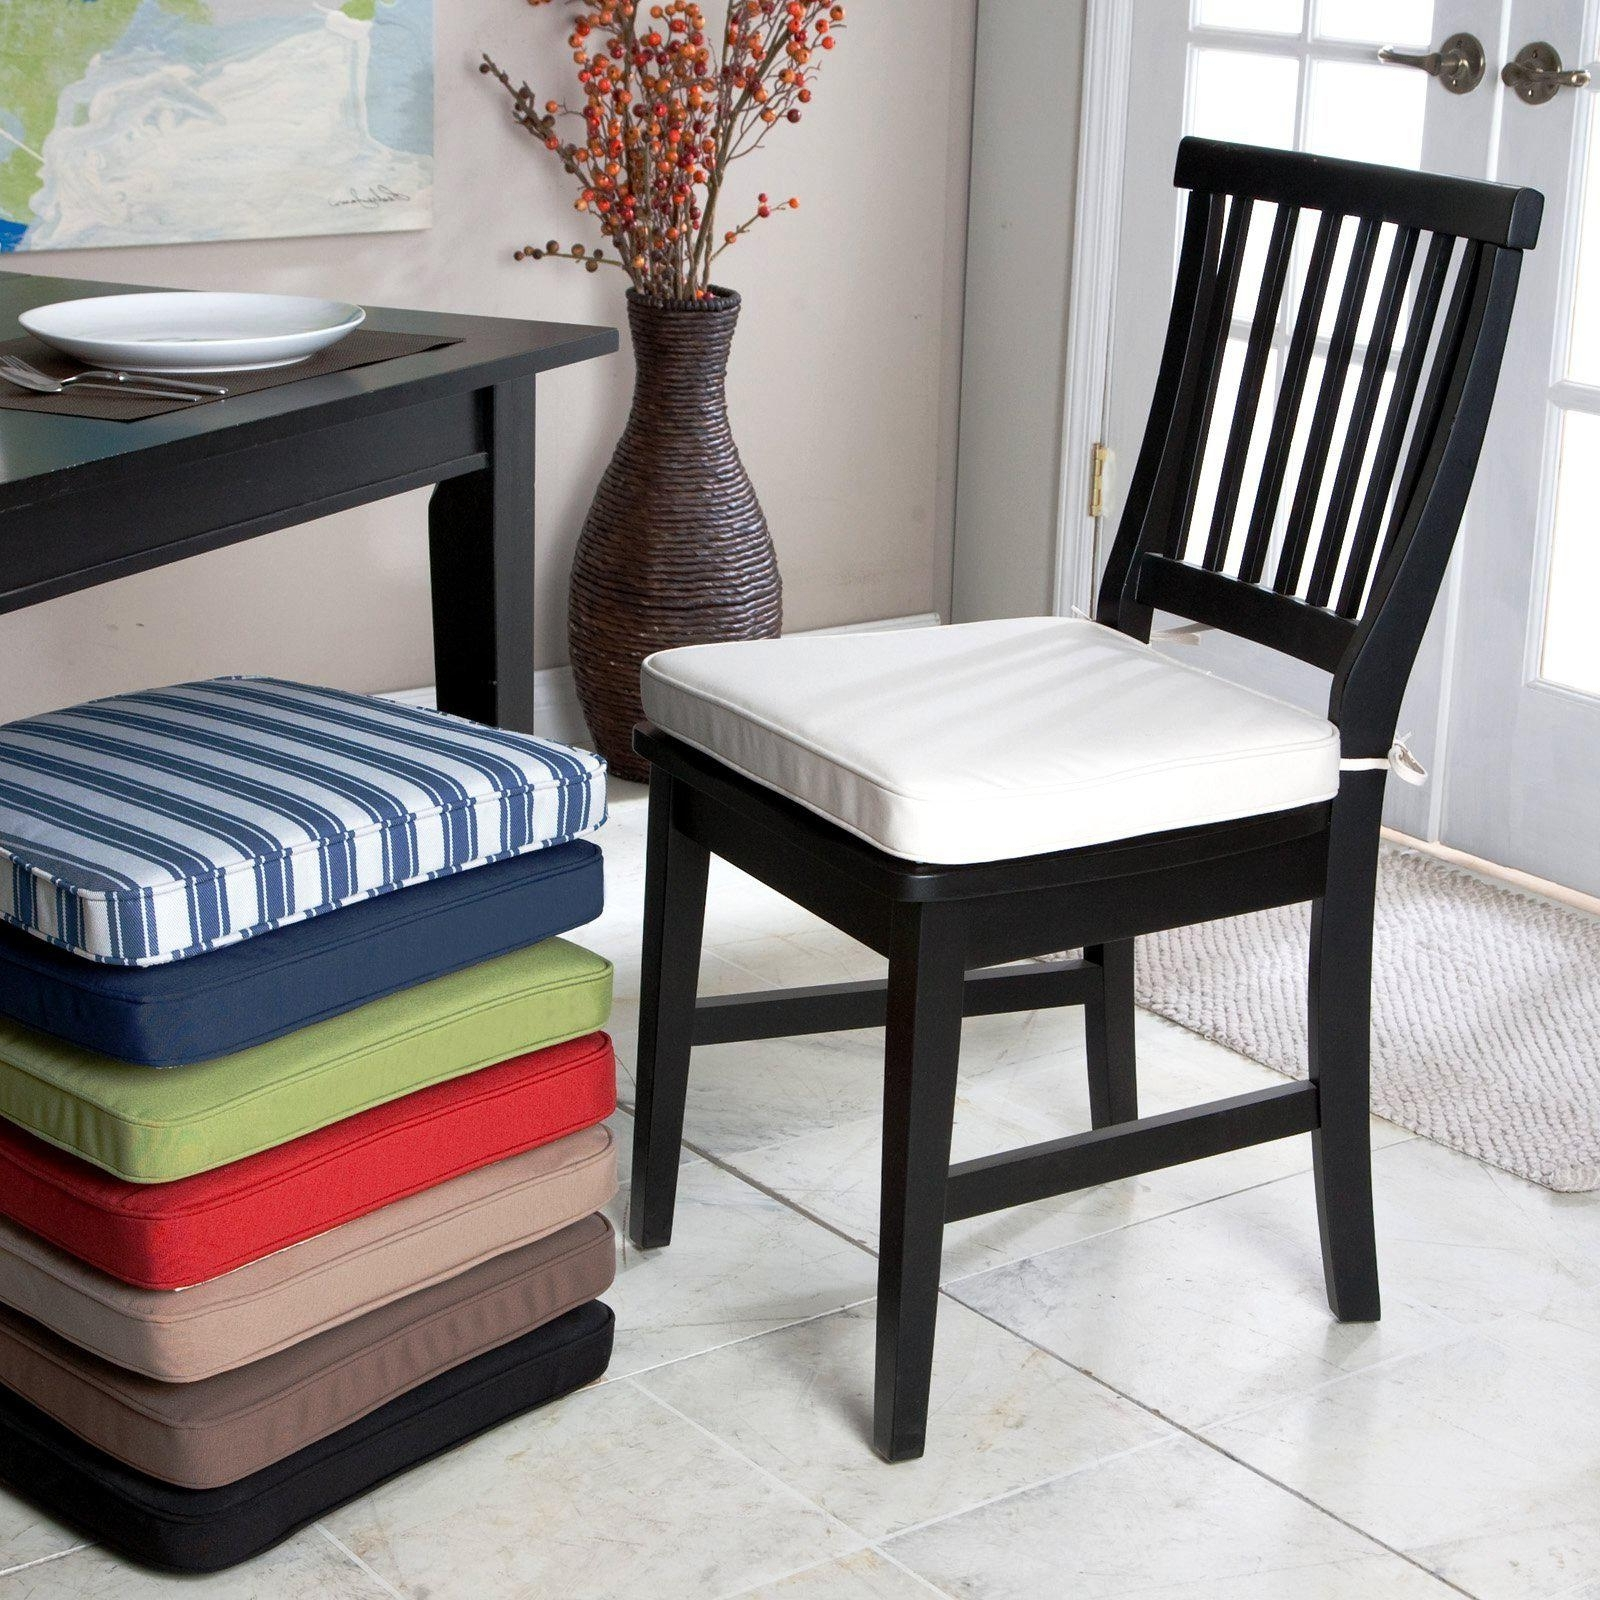 Wayfair Outdoor Rocking Chair Cushions Kitchen Pads Chairs Ideas 60 Inside Well Liked Rocking Chairs At Wayfair (View 10 of 15)